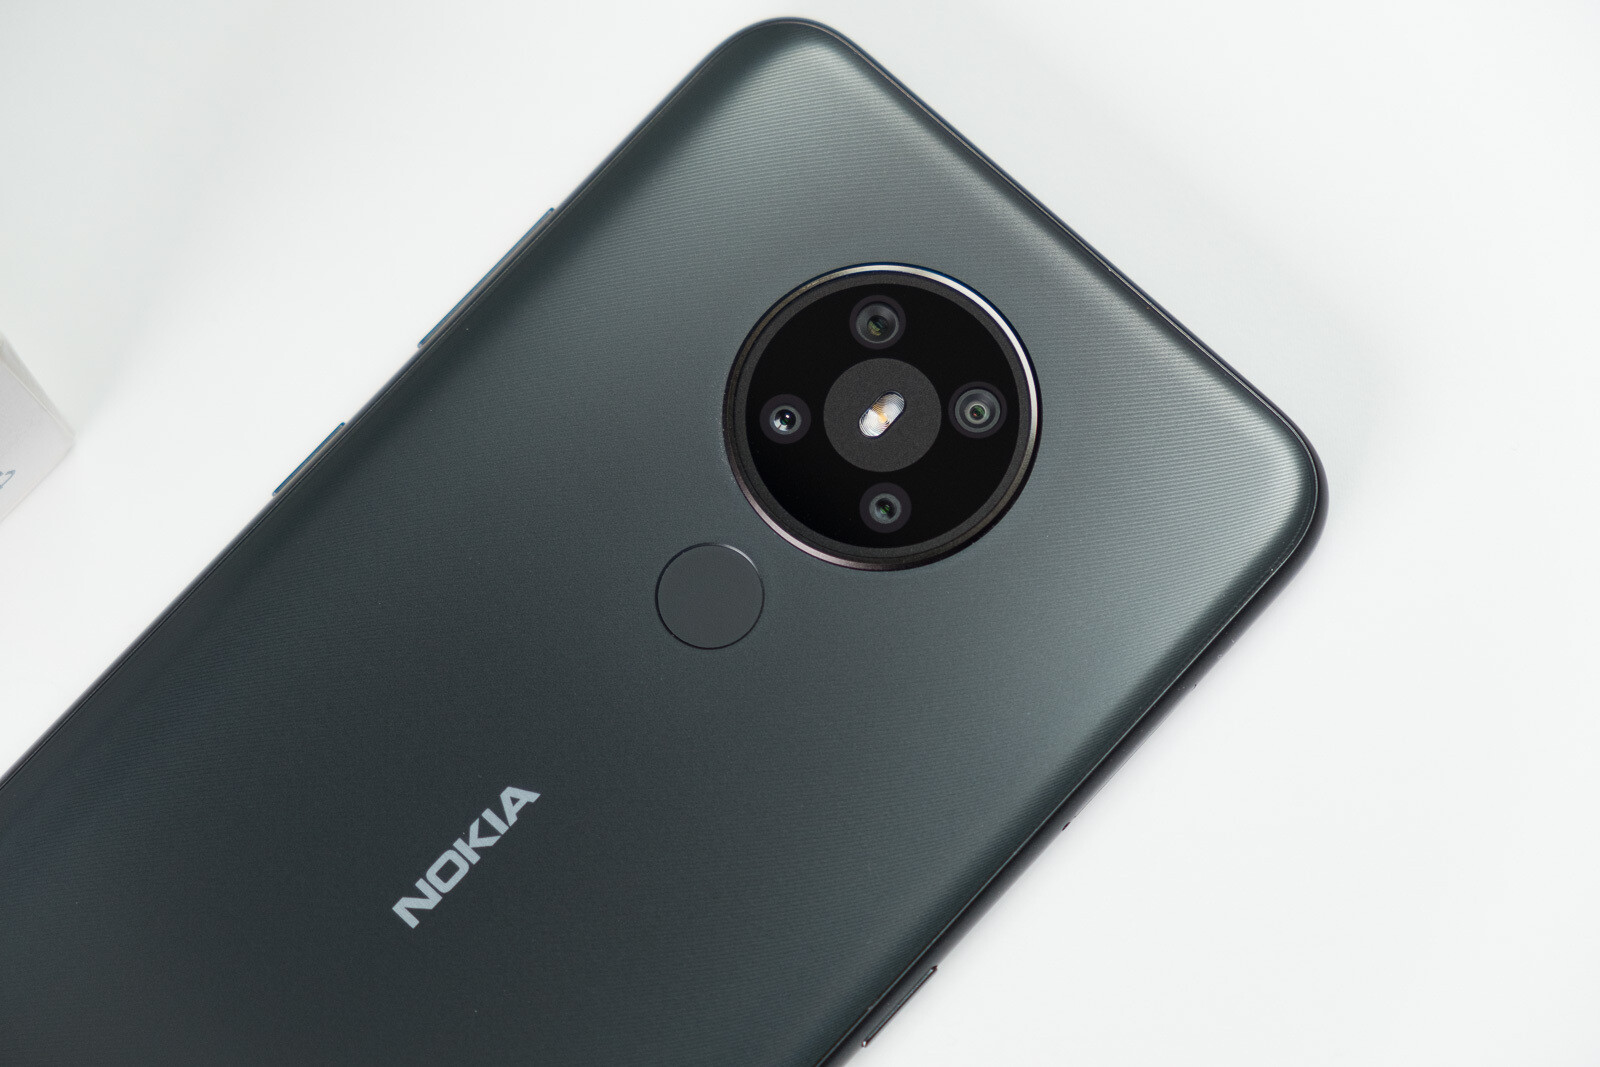 Newest Nokia 3 4 Leak Reveals Key Specs Pricing And Colors Phonearena